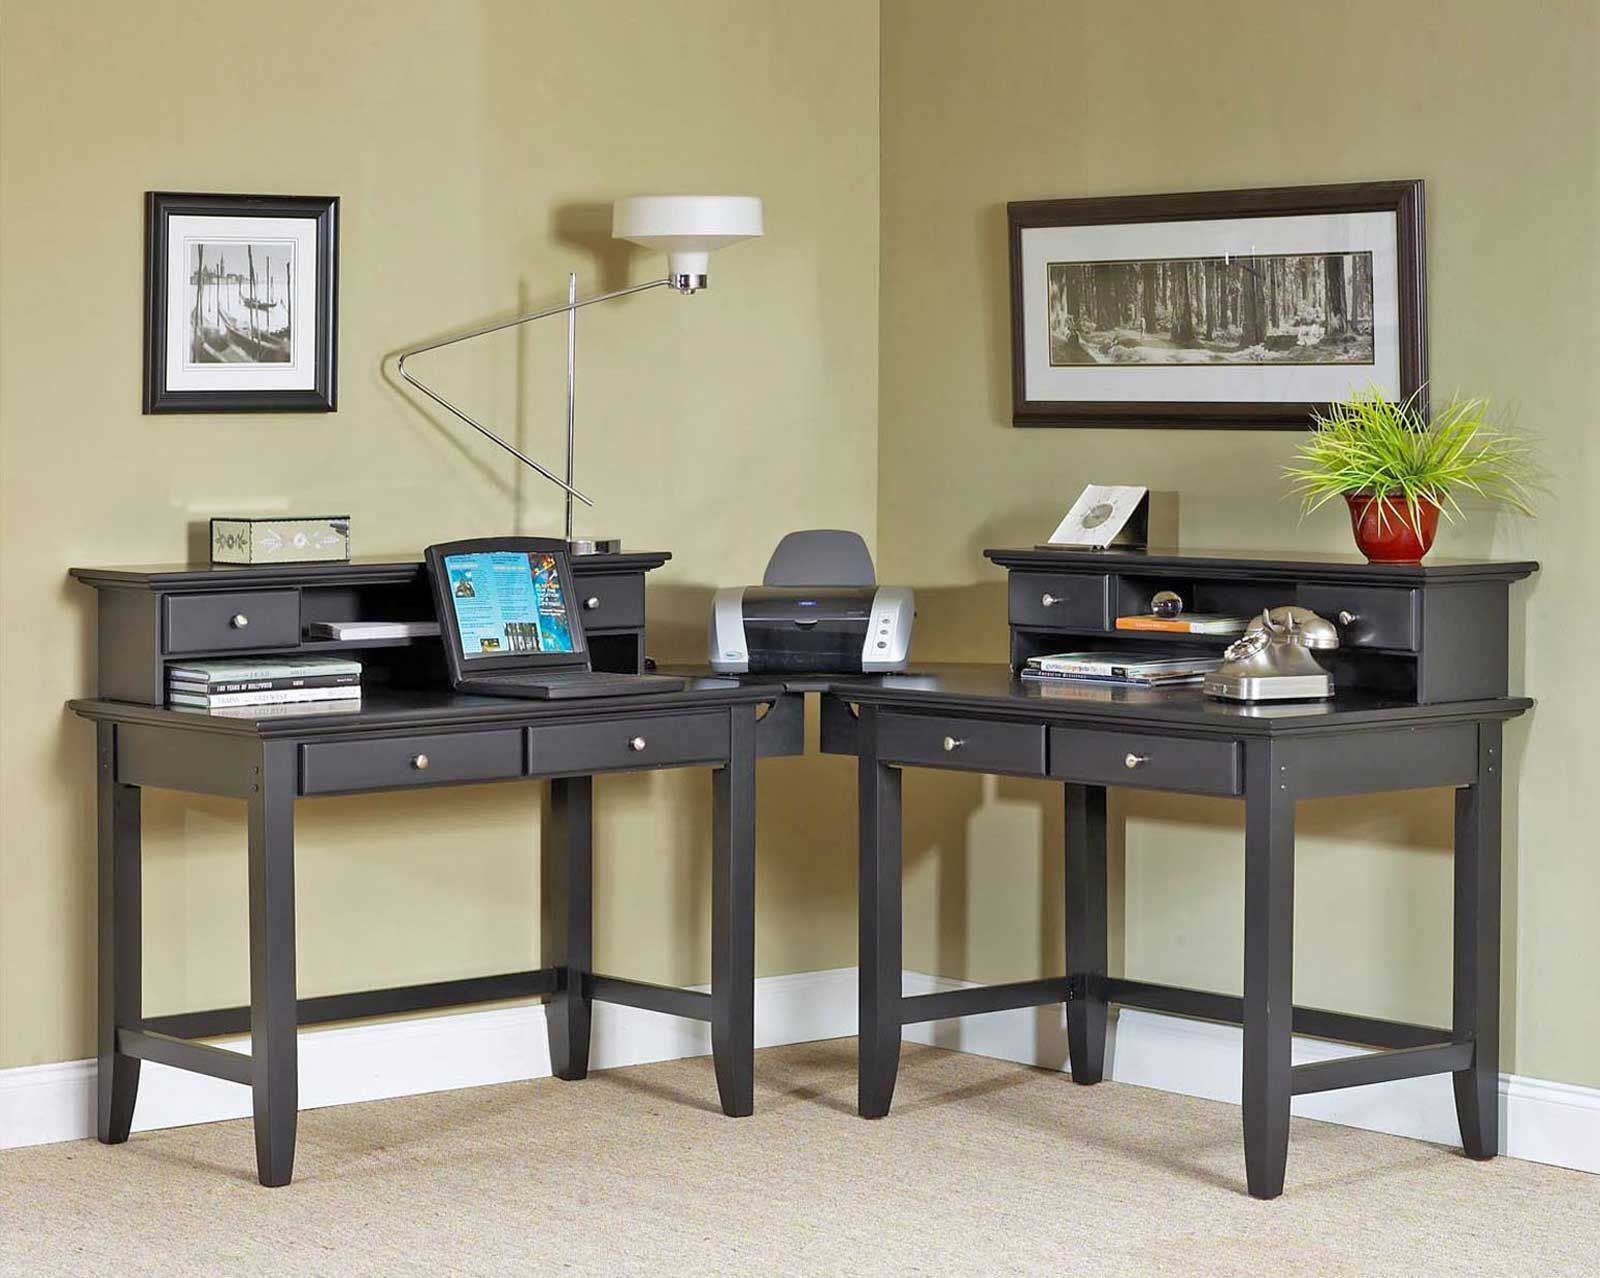 Home Styles Bedford Corner Desk Student Workstation - Ebony